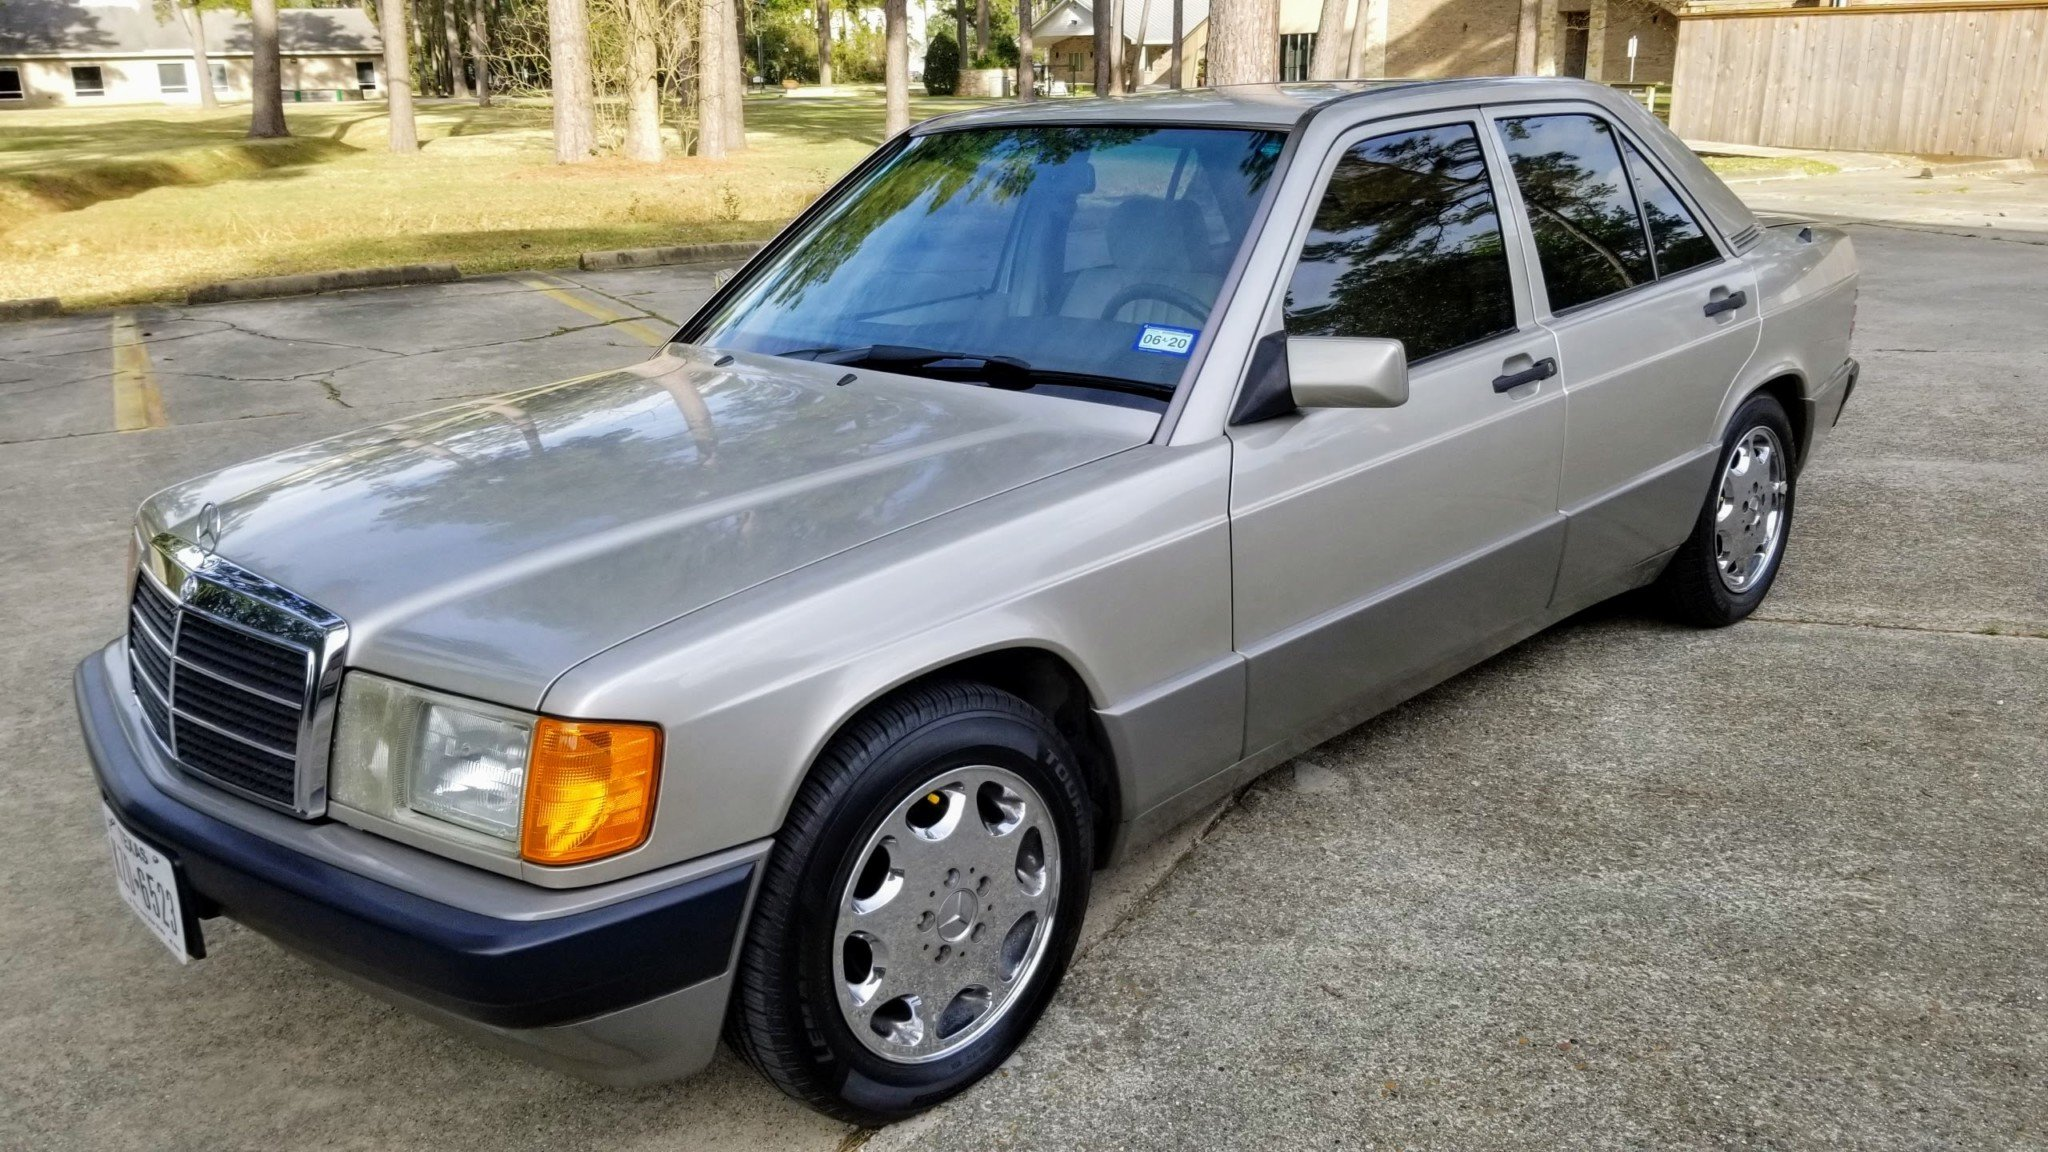 1993 Mercedes-Benz 190E 2.3 For Sale (picture 2 of 24)